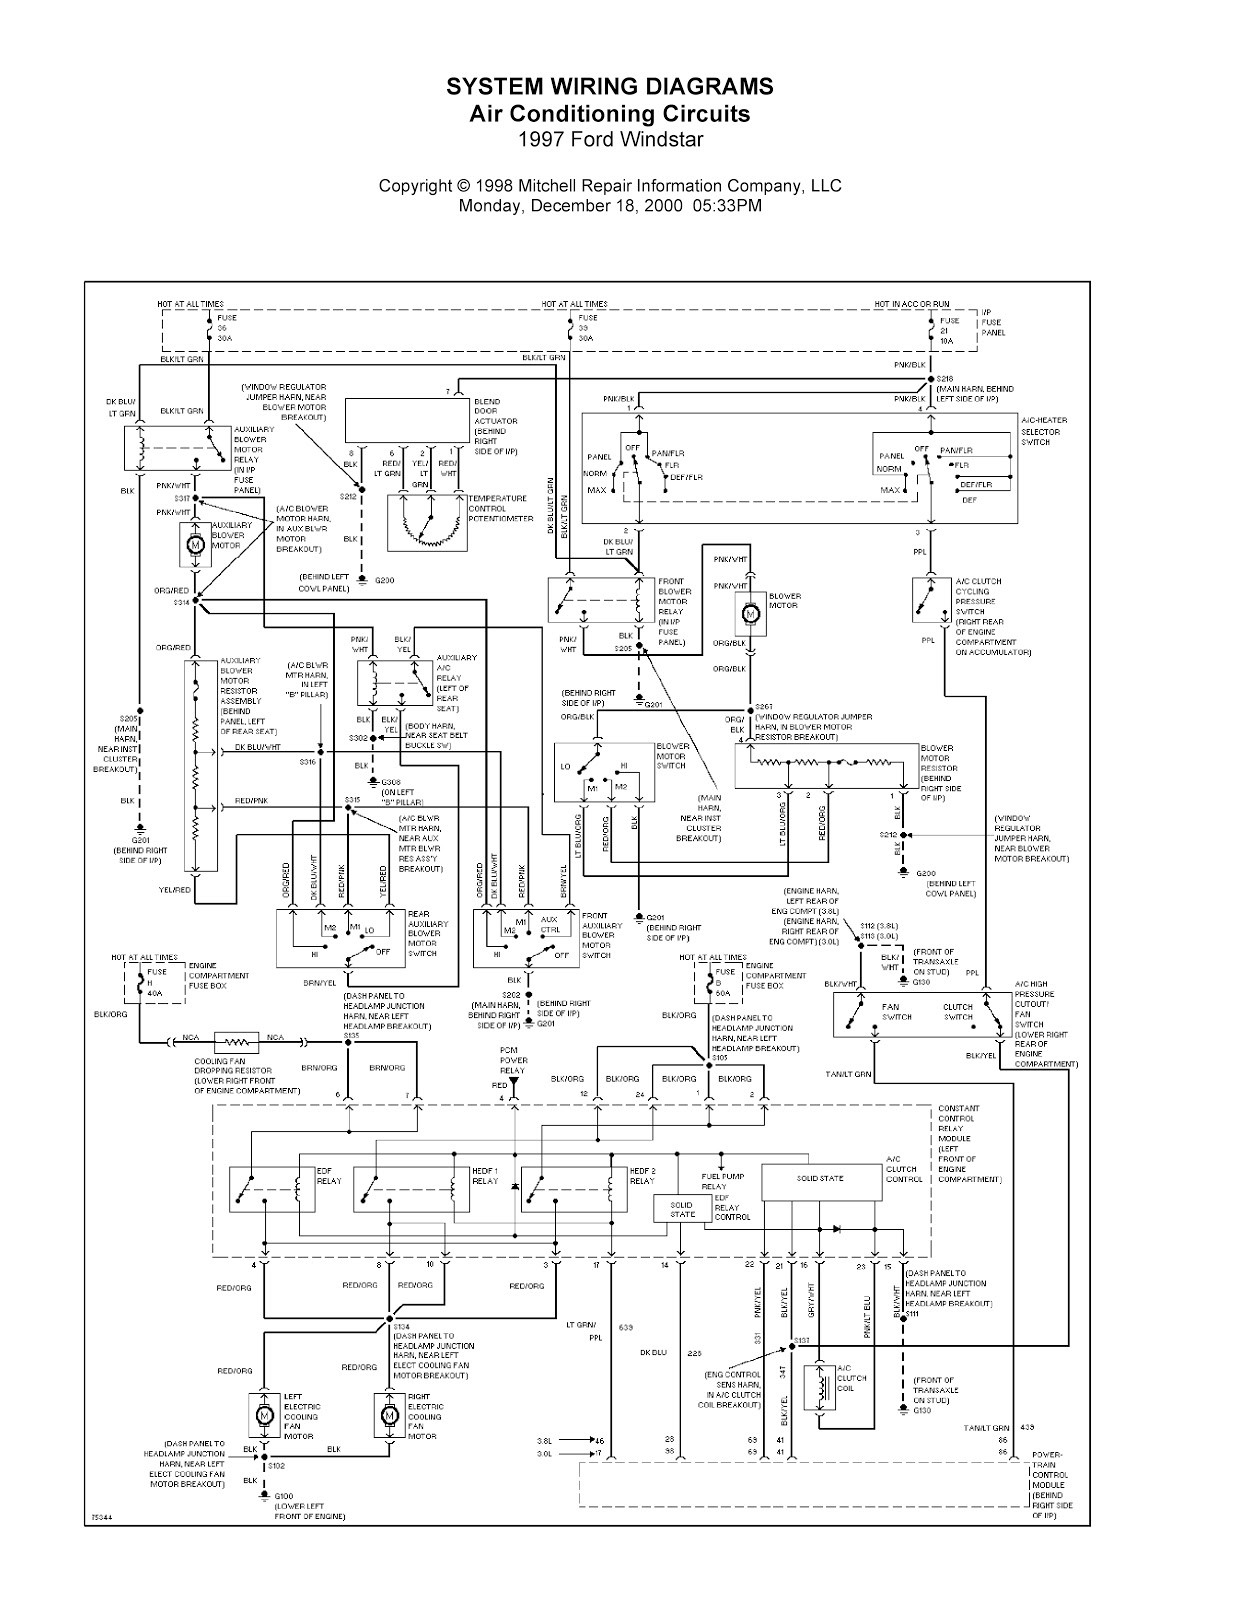 1998 Ford Expedition Engine Diagram Real Wiring Taurus Fuse Box Also Free Image Rh Detoxicrecenze Com 2001 2003